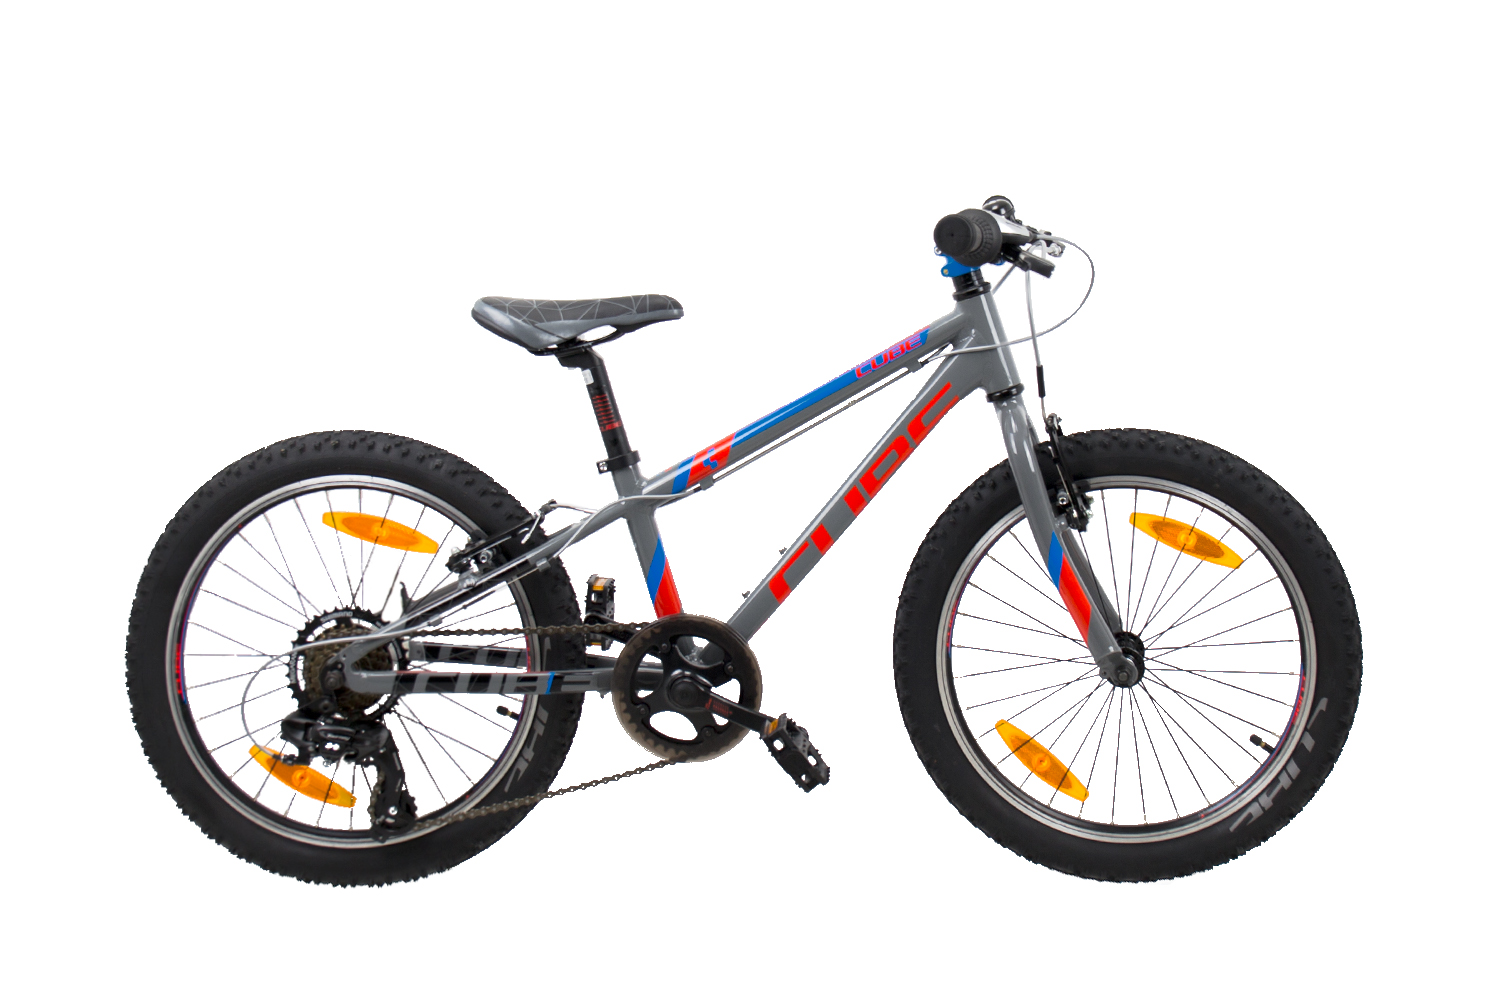 Cube Kid 200 action team grey 2019 - MTB 20 -  20 Zoll